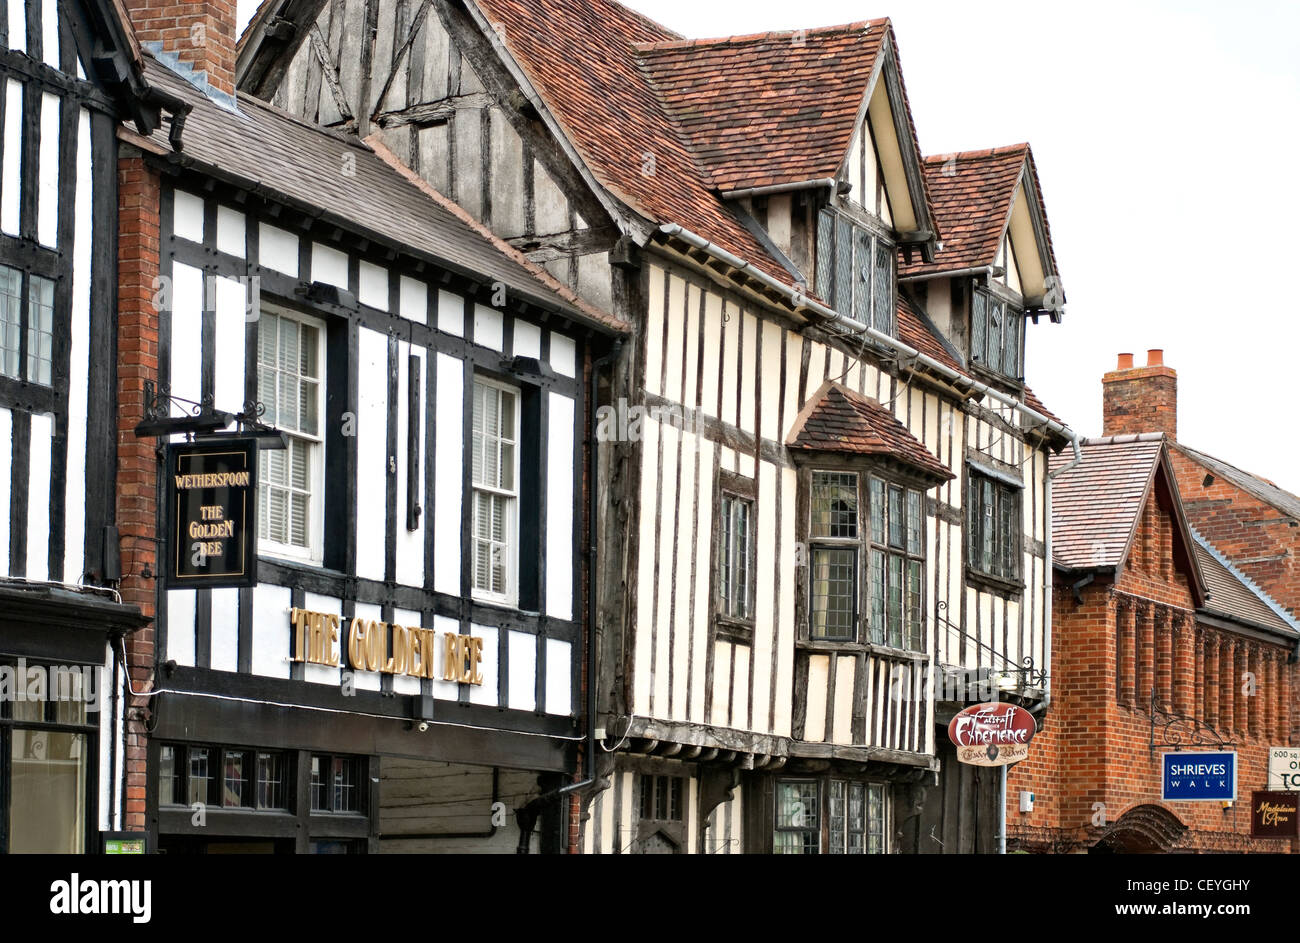 Falstaff Experience in Stratford upon Avon, a award-winning visitor attraction that brings the 16th century to life. - Stock Image